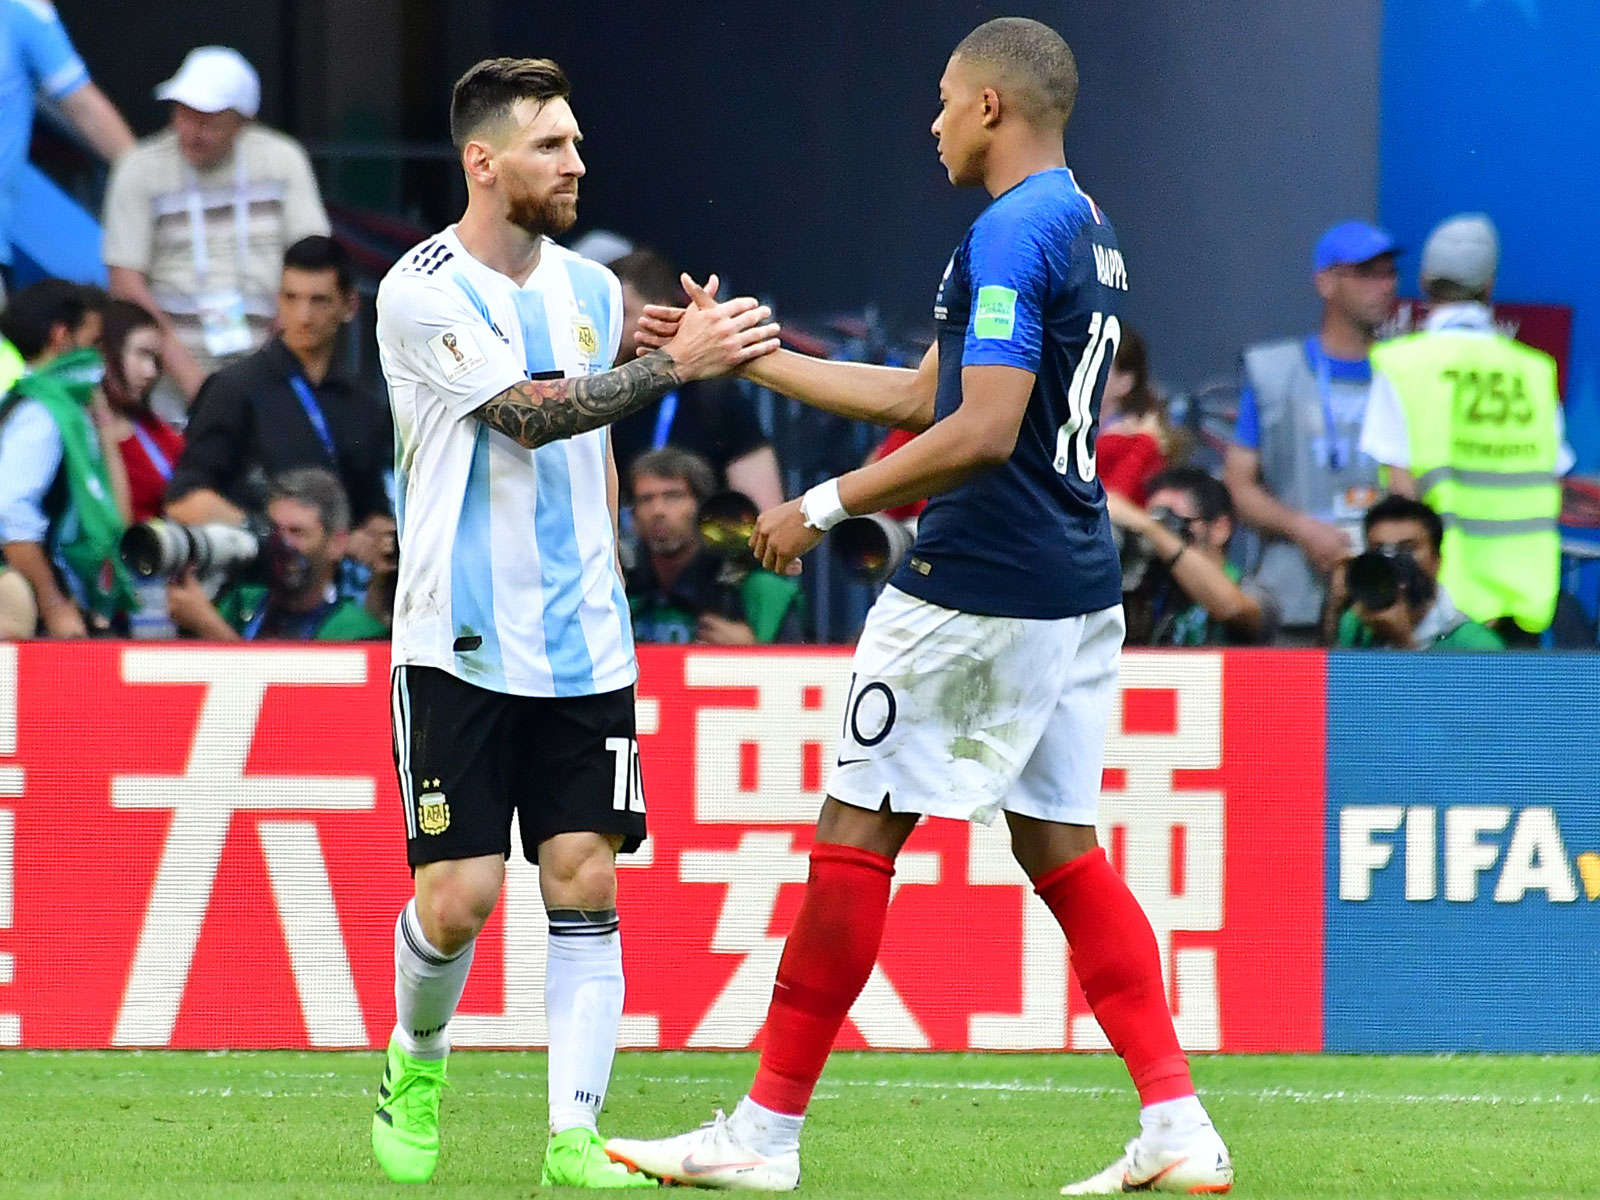 Kylian Mbappe and Lionel Messi greet each other in France's World Cup victory over Argentina